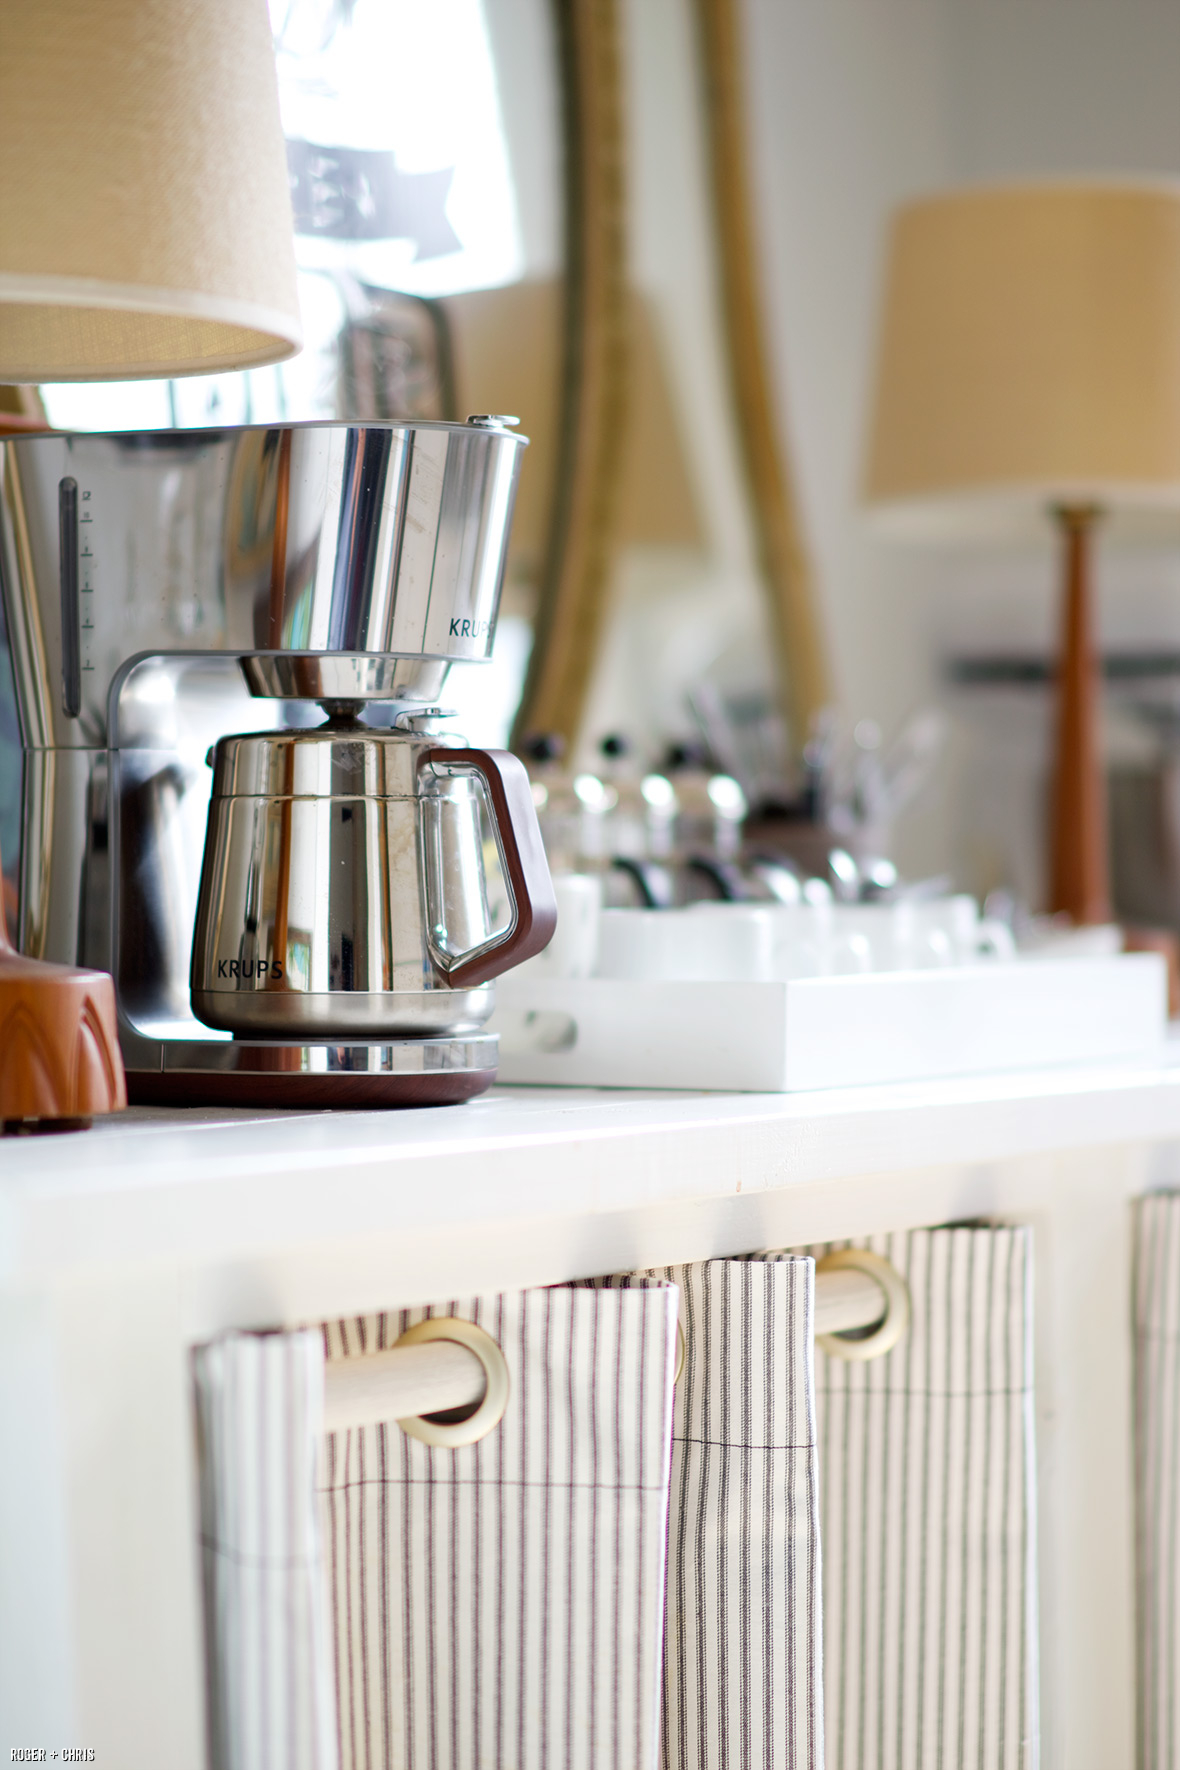 The coffee maker and cups sit atop the pantry table.